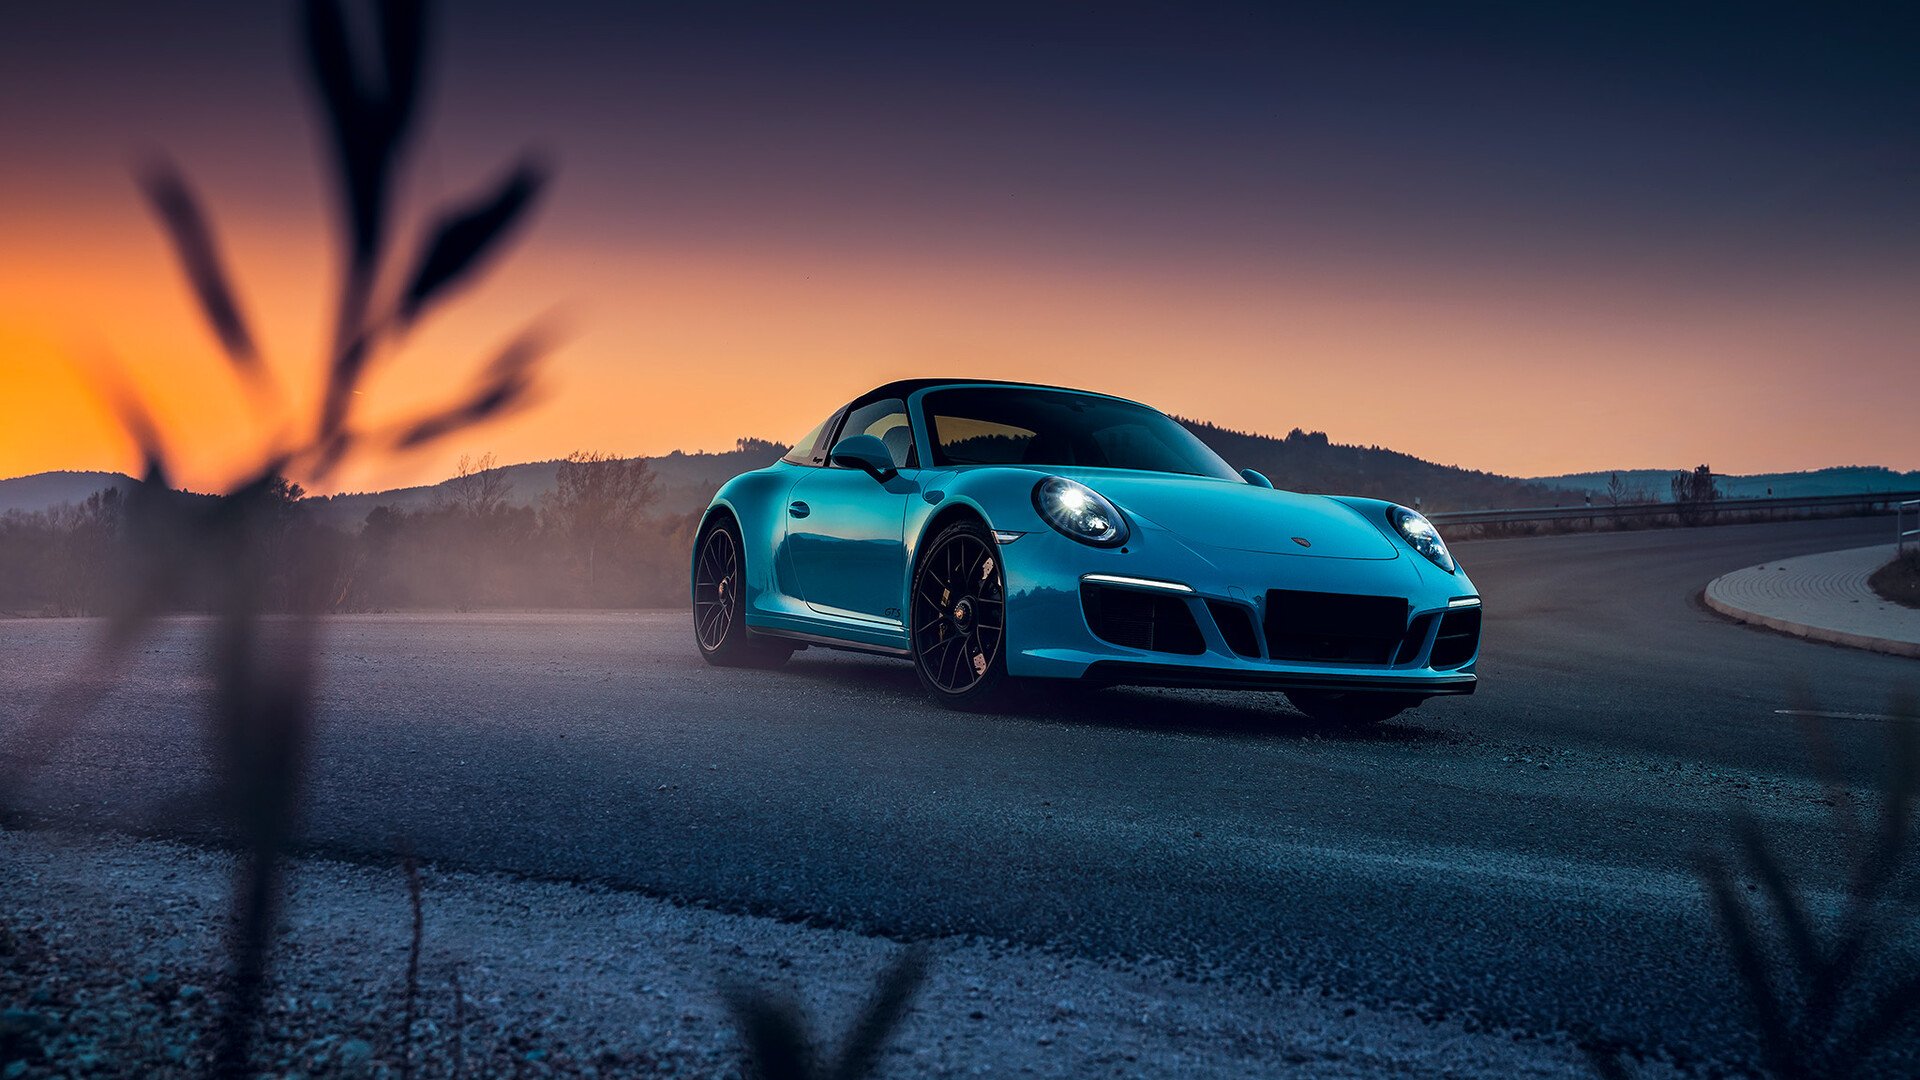 1920x1080 Porsche 911 Targa 4s Gts Laptop Full Hd 1080p Hd 4k Wallpapers Images Backgrounds Photos And Pictures